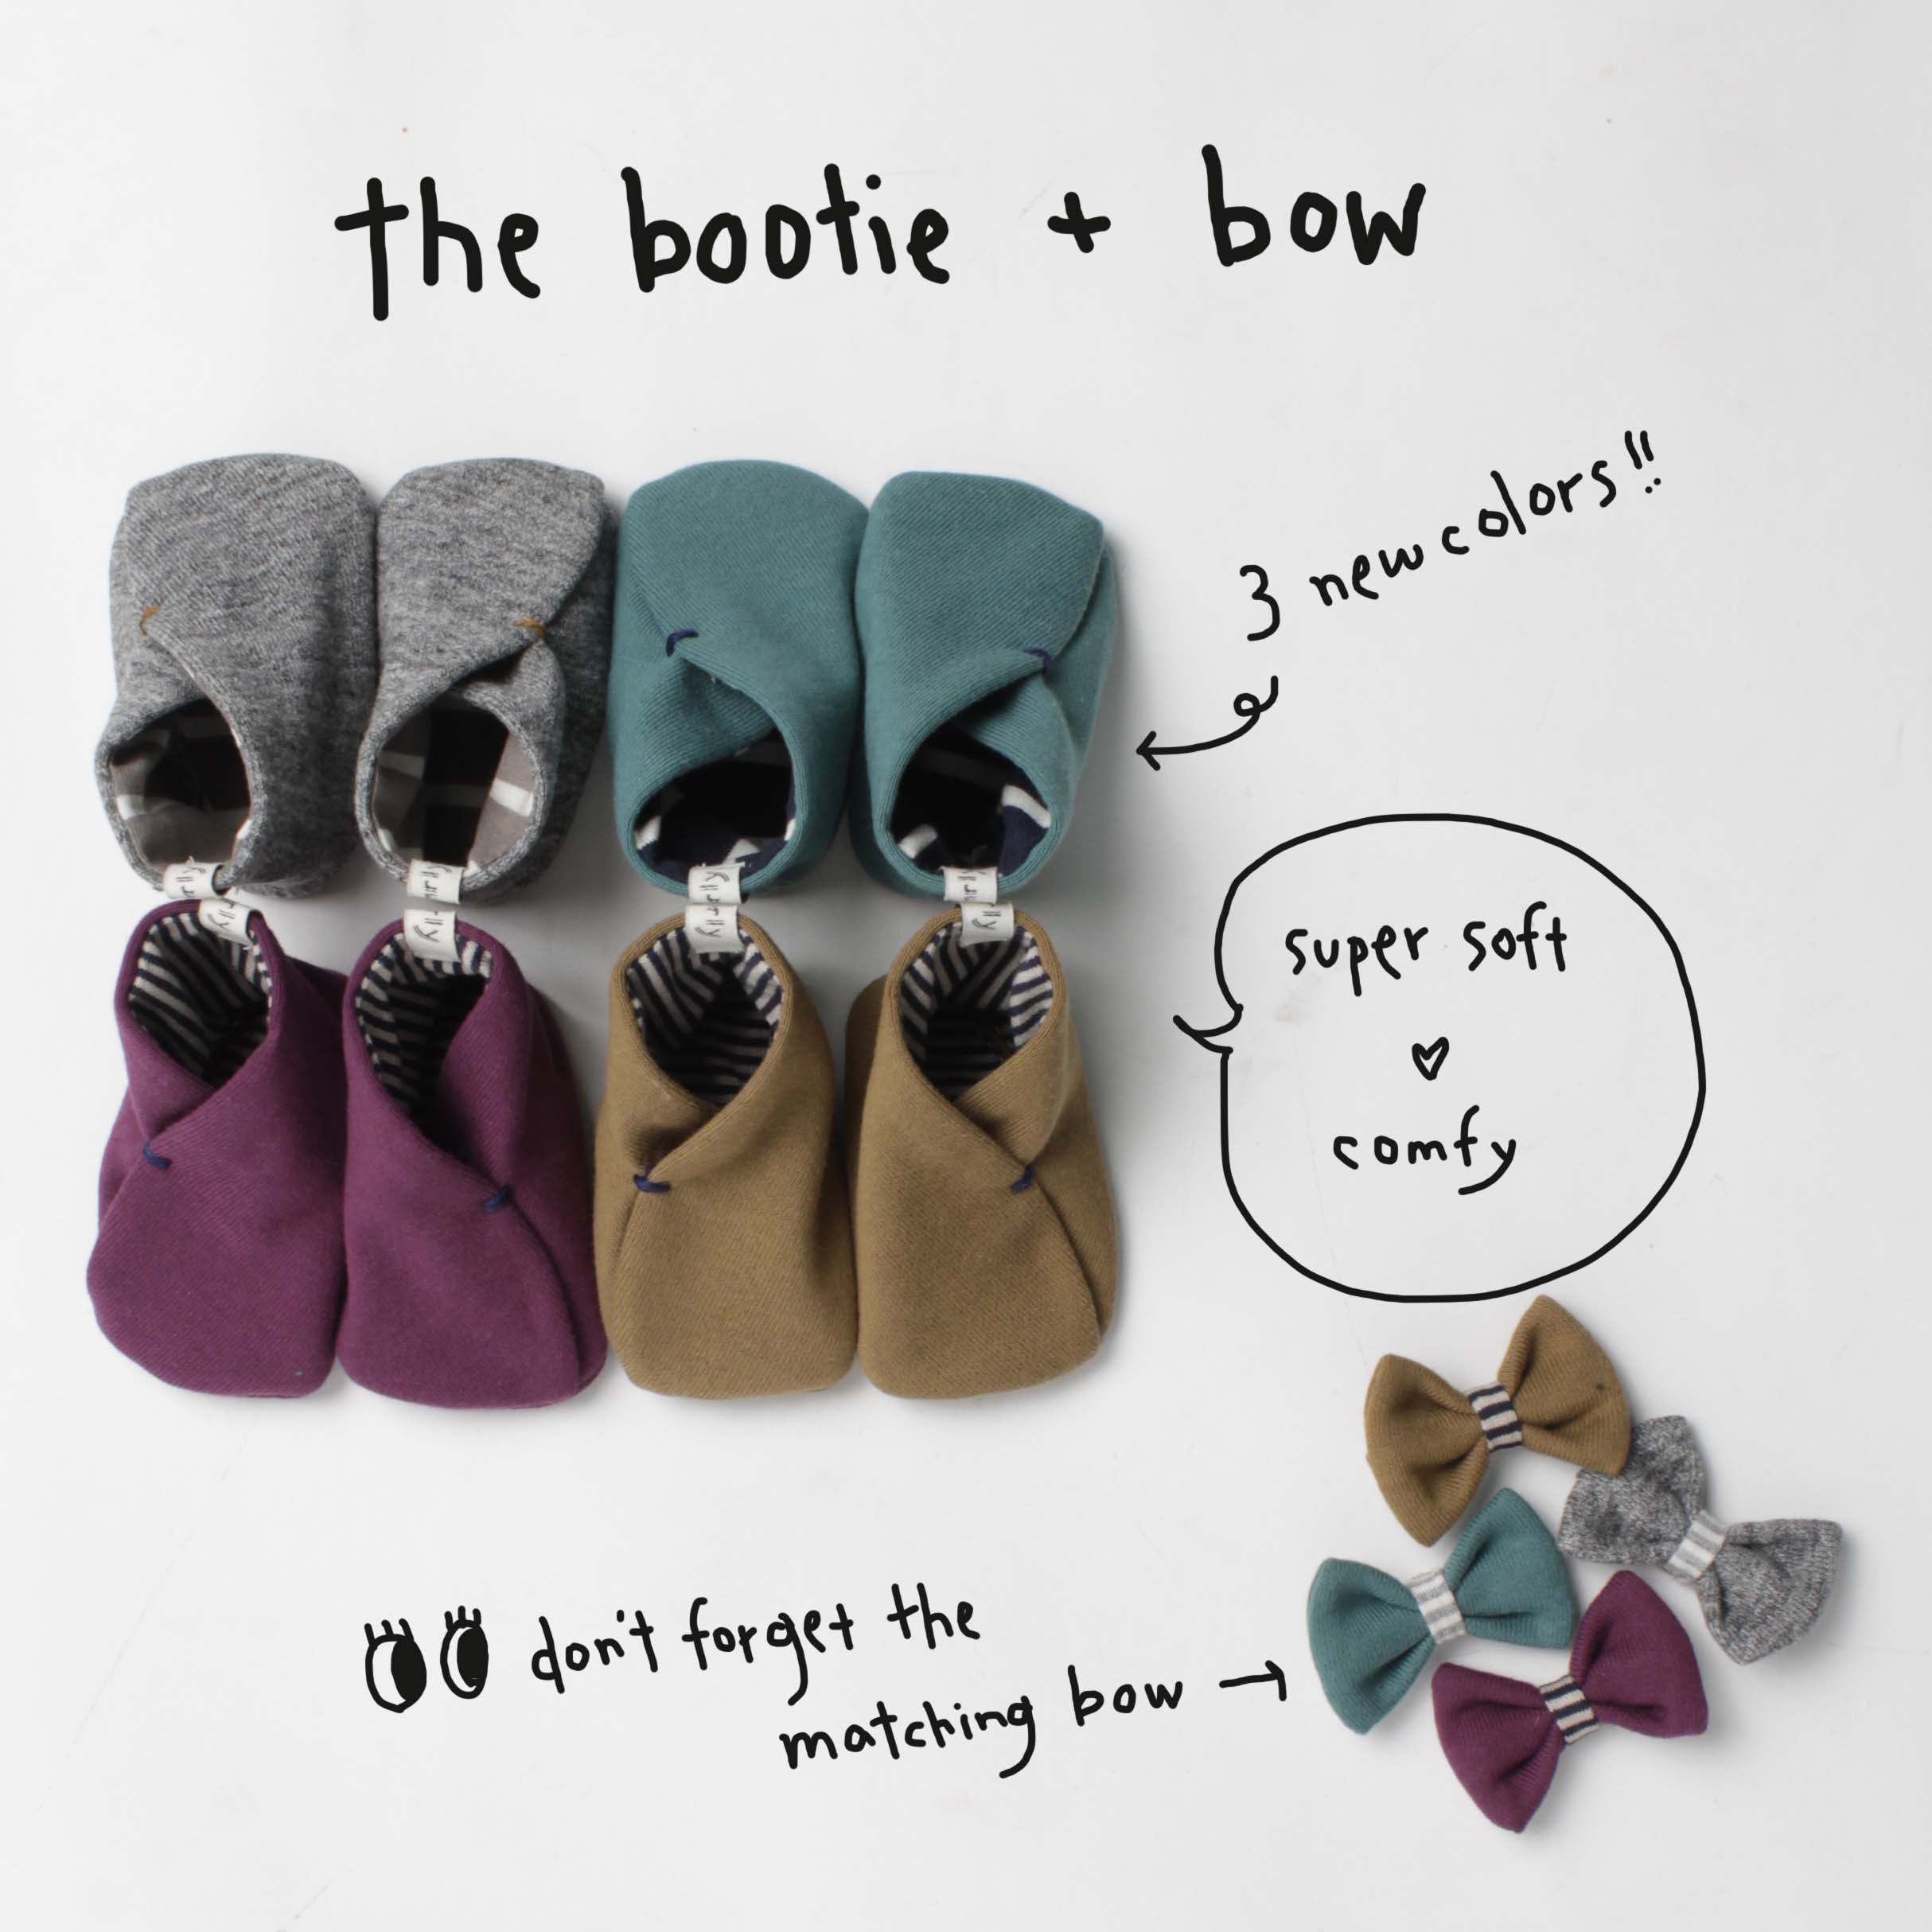 bootie and bow.jpg